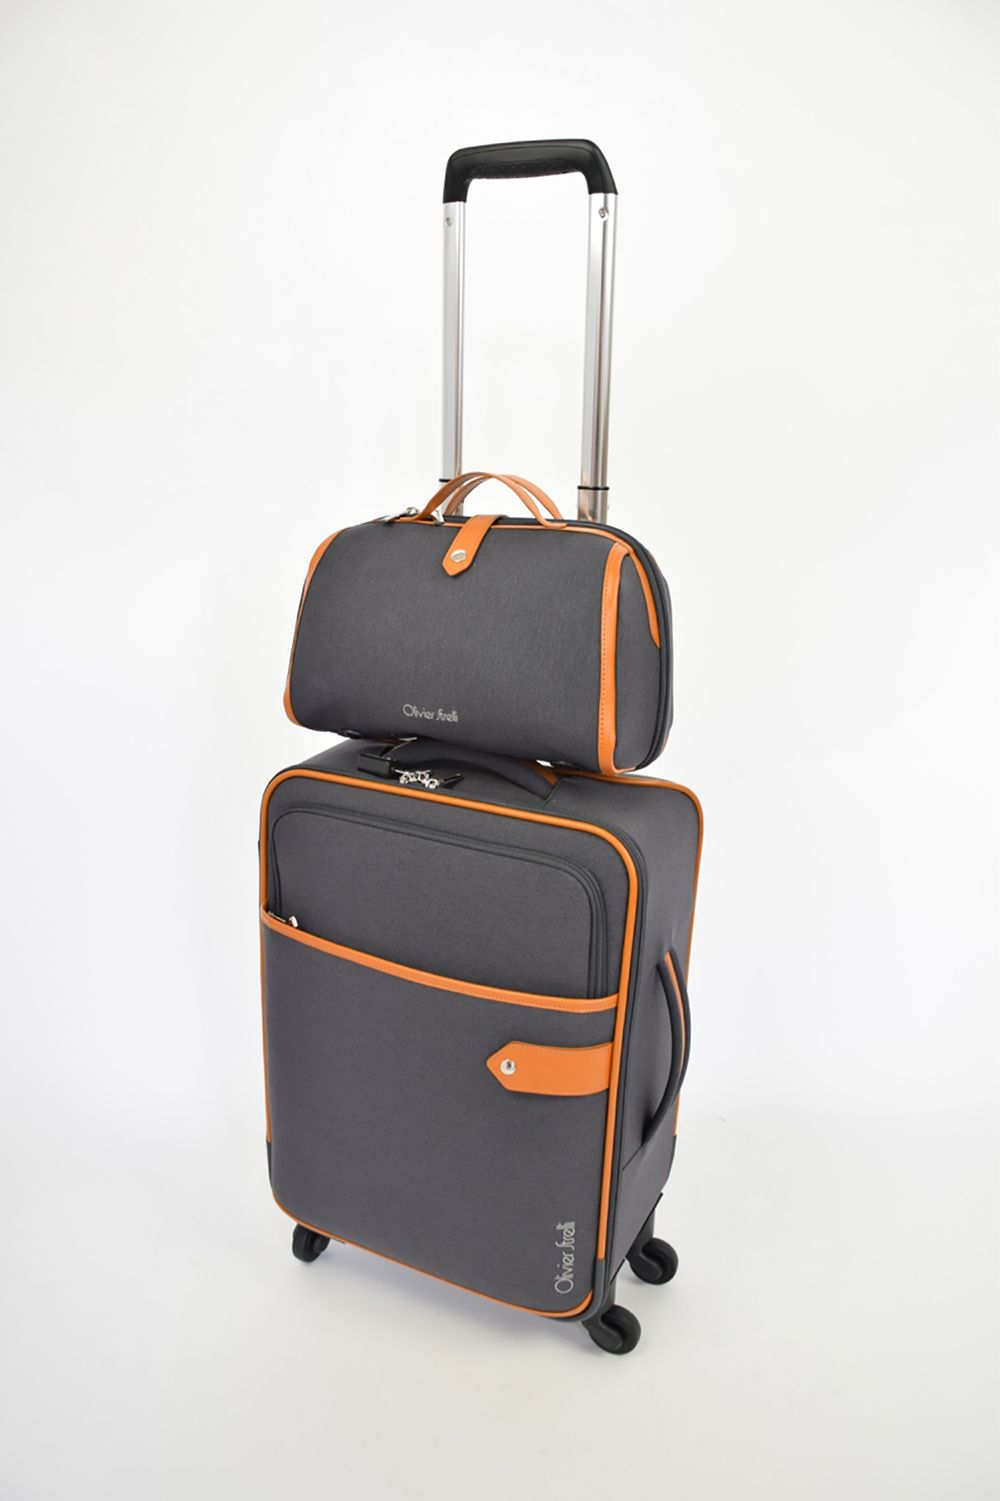 Friday Treat Competition Win A Knomo Trolley Bag Friday Treat Competition Win A Knomo Trolley Bag new images